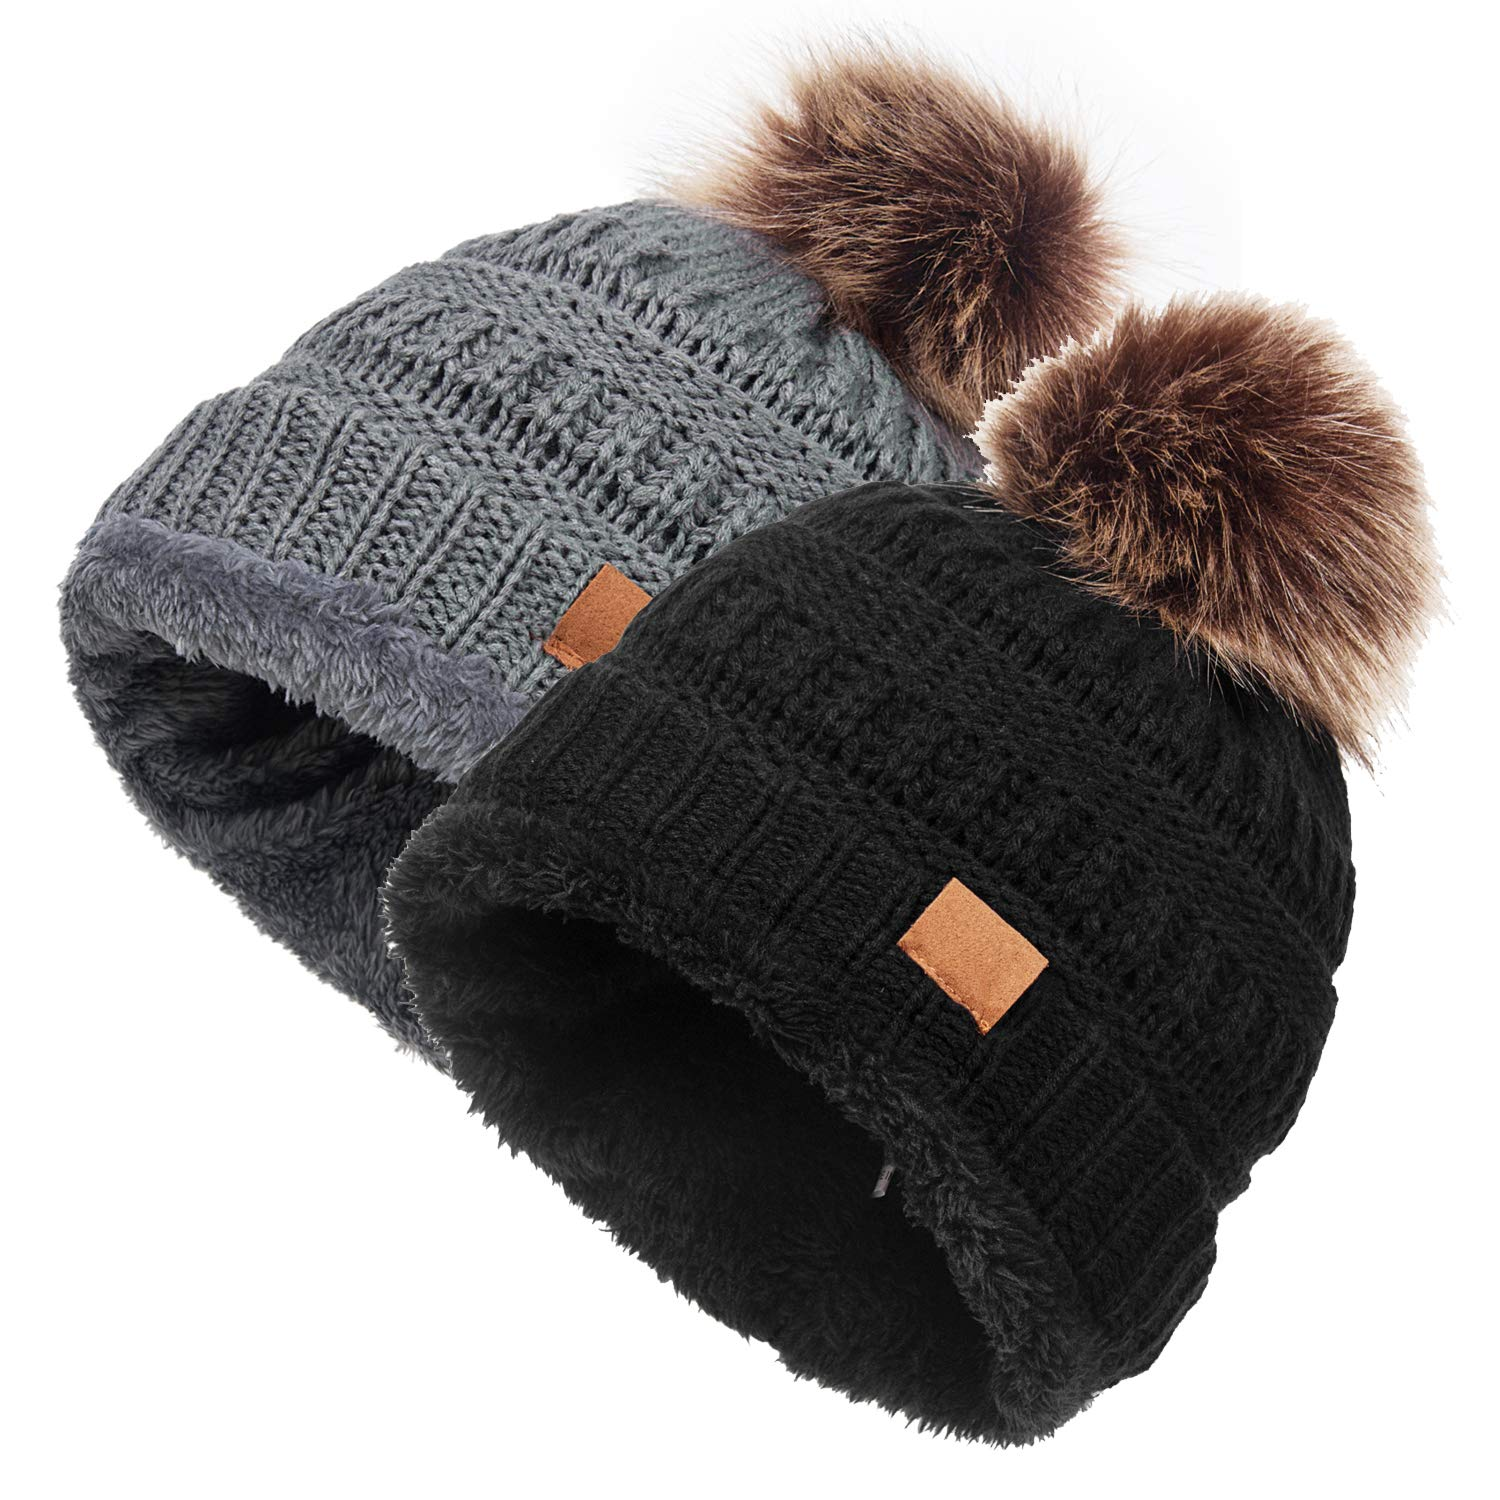 Ymombest Womens Winter Hats Soft Cable Knit Cap Warm Fleece Lined Beanie Hat